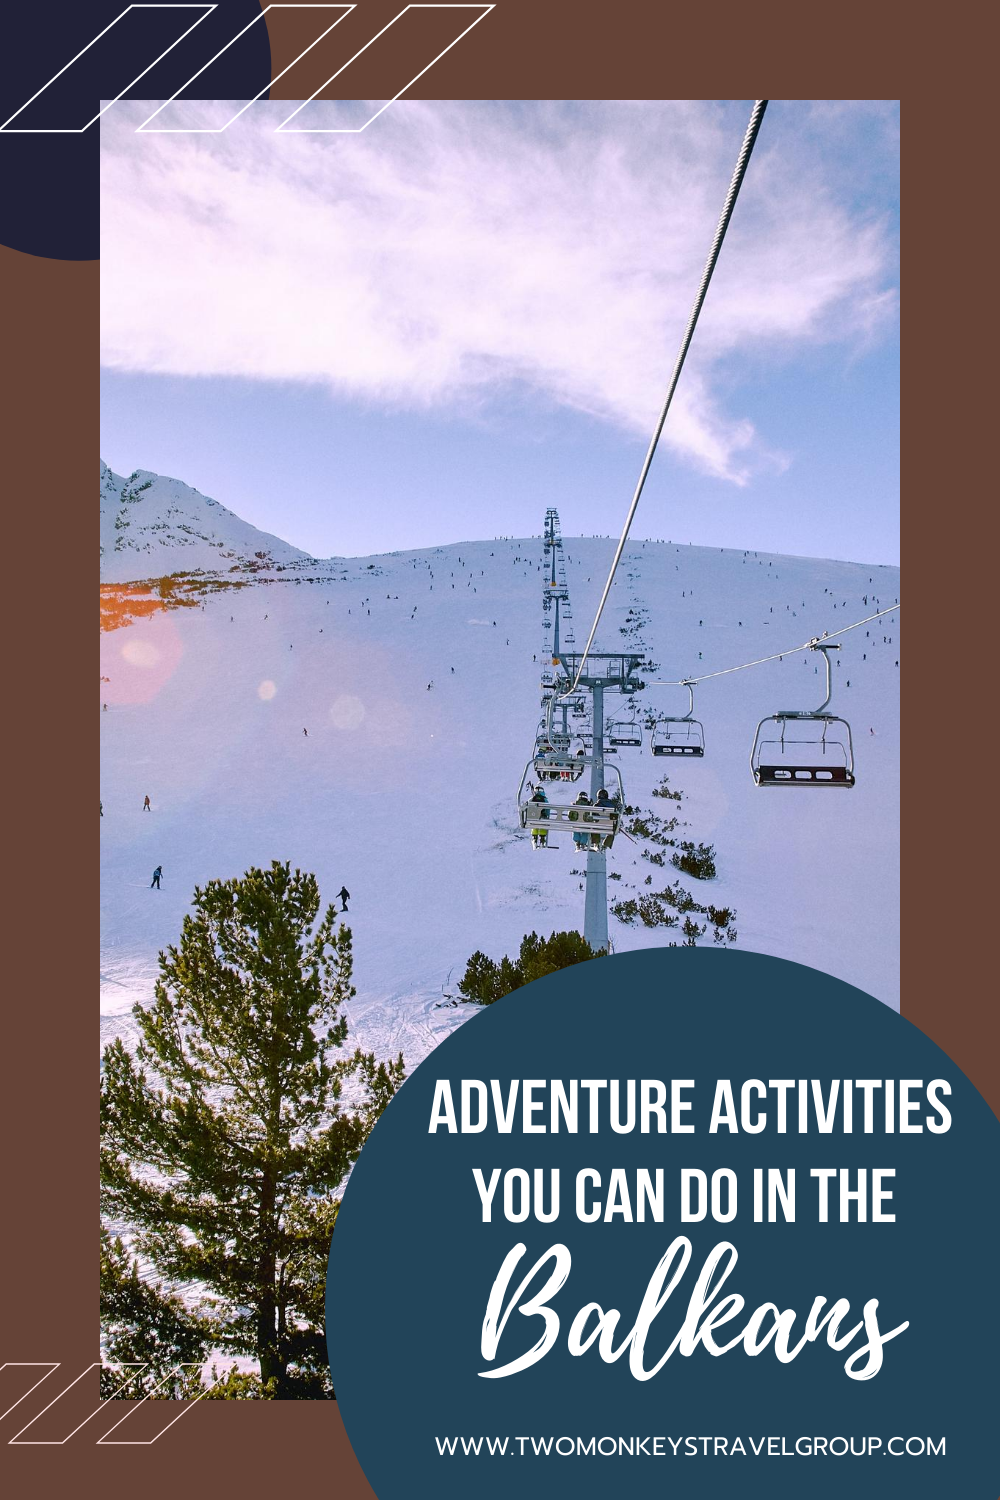 15 Adventure Activities You Can Do in the Balkans